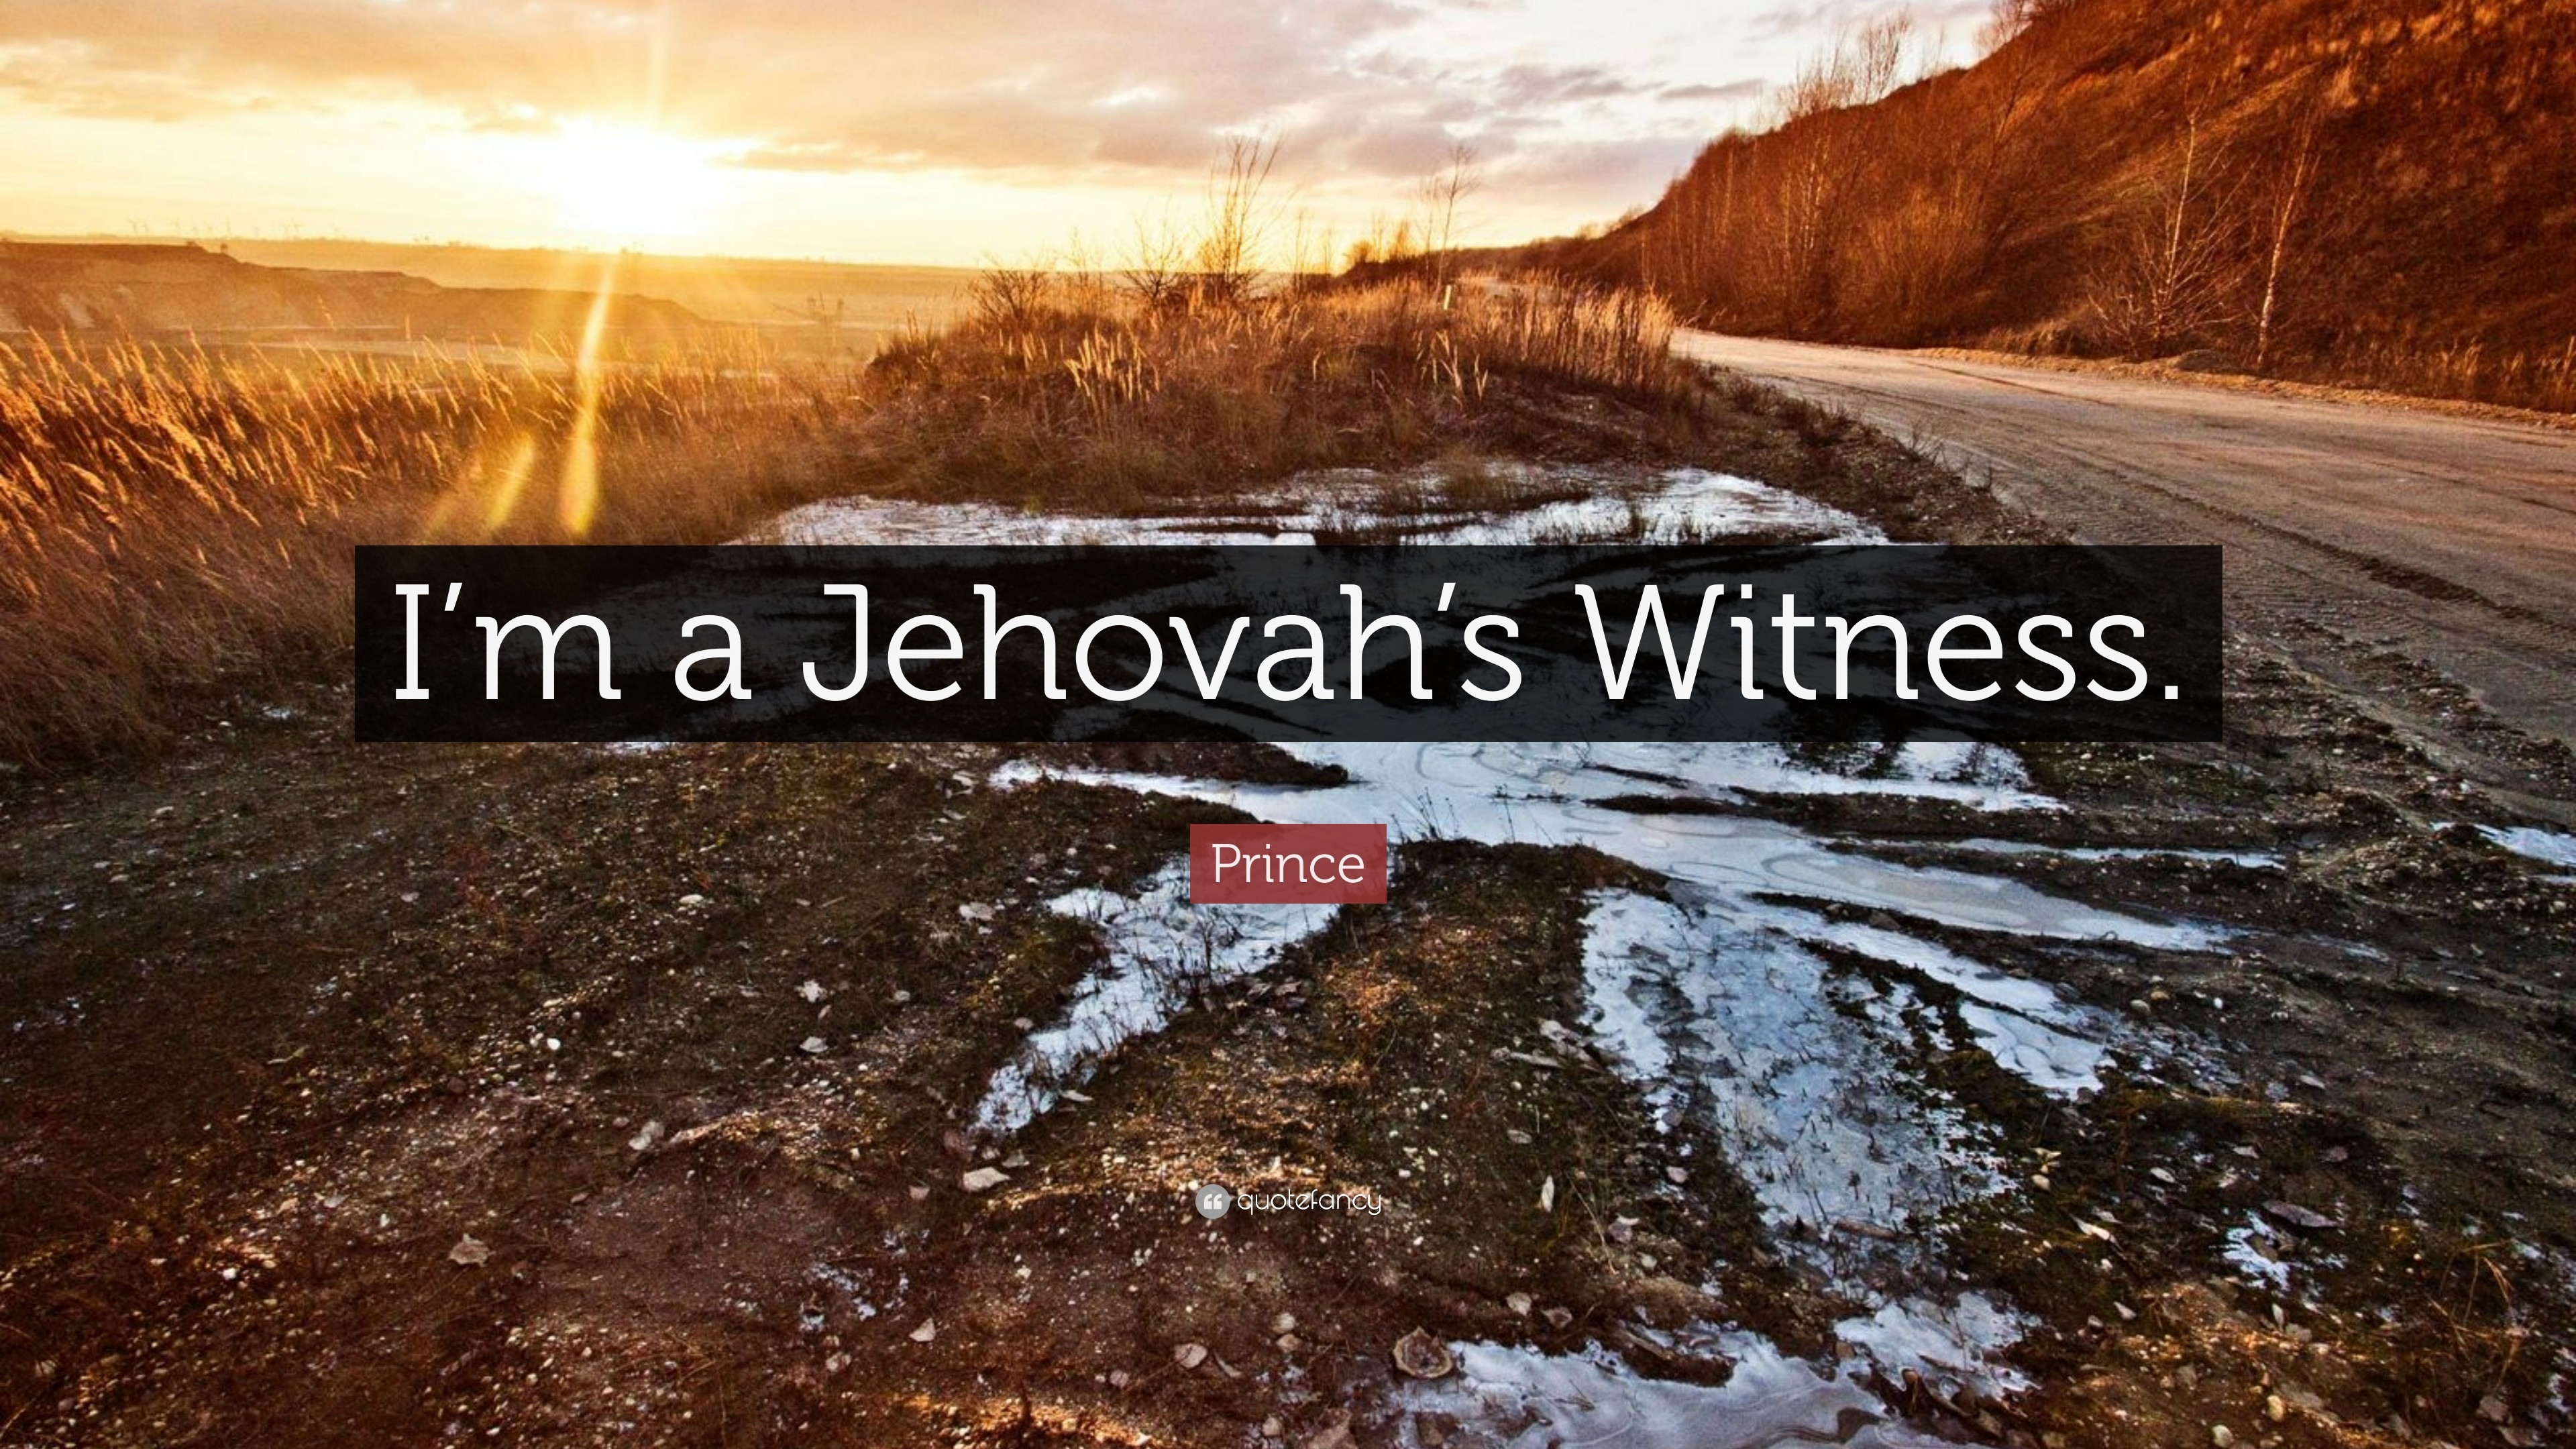 64 Jehovahs Witnesses Wallpapers on WallpaperPlay 3840x2160